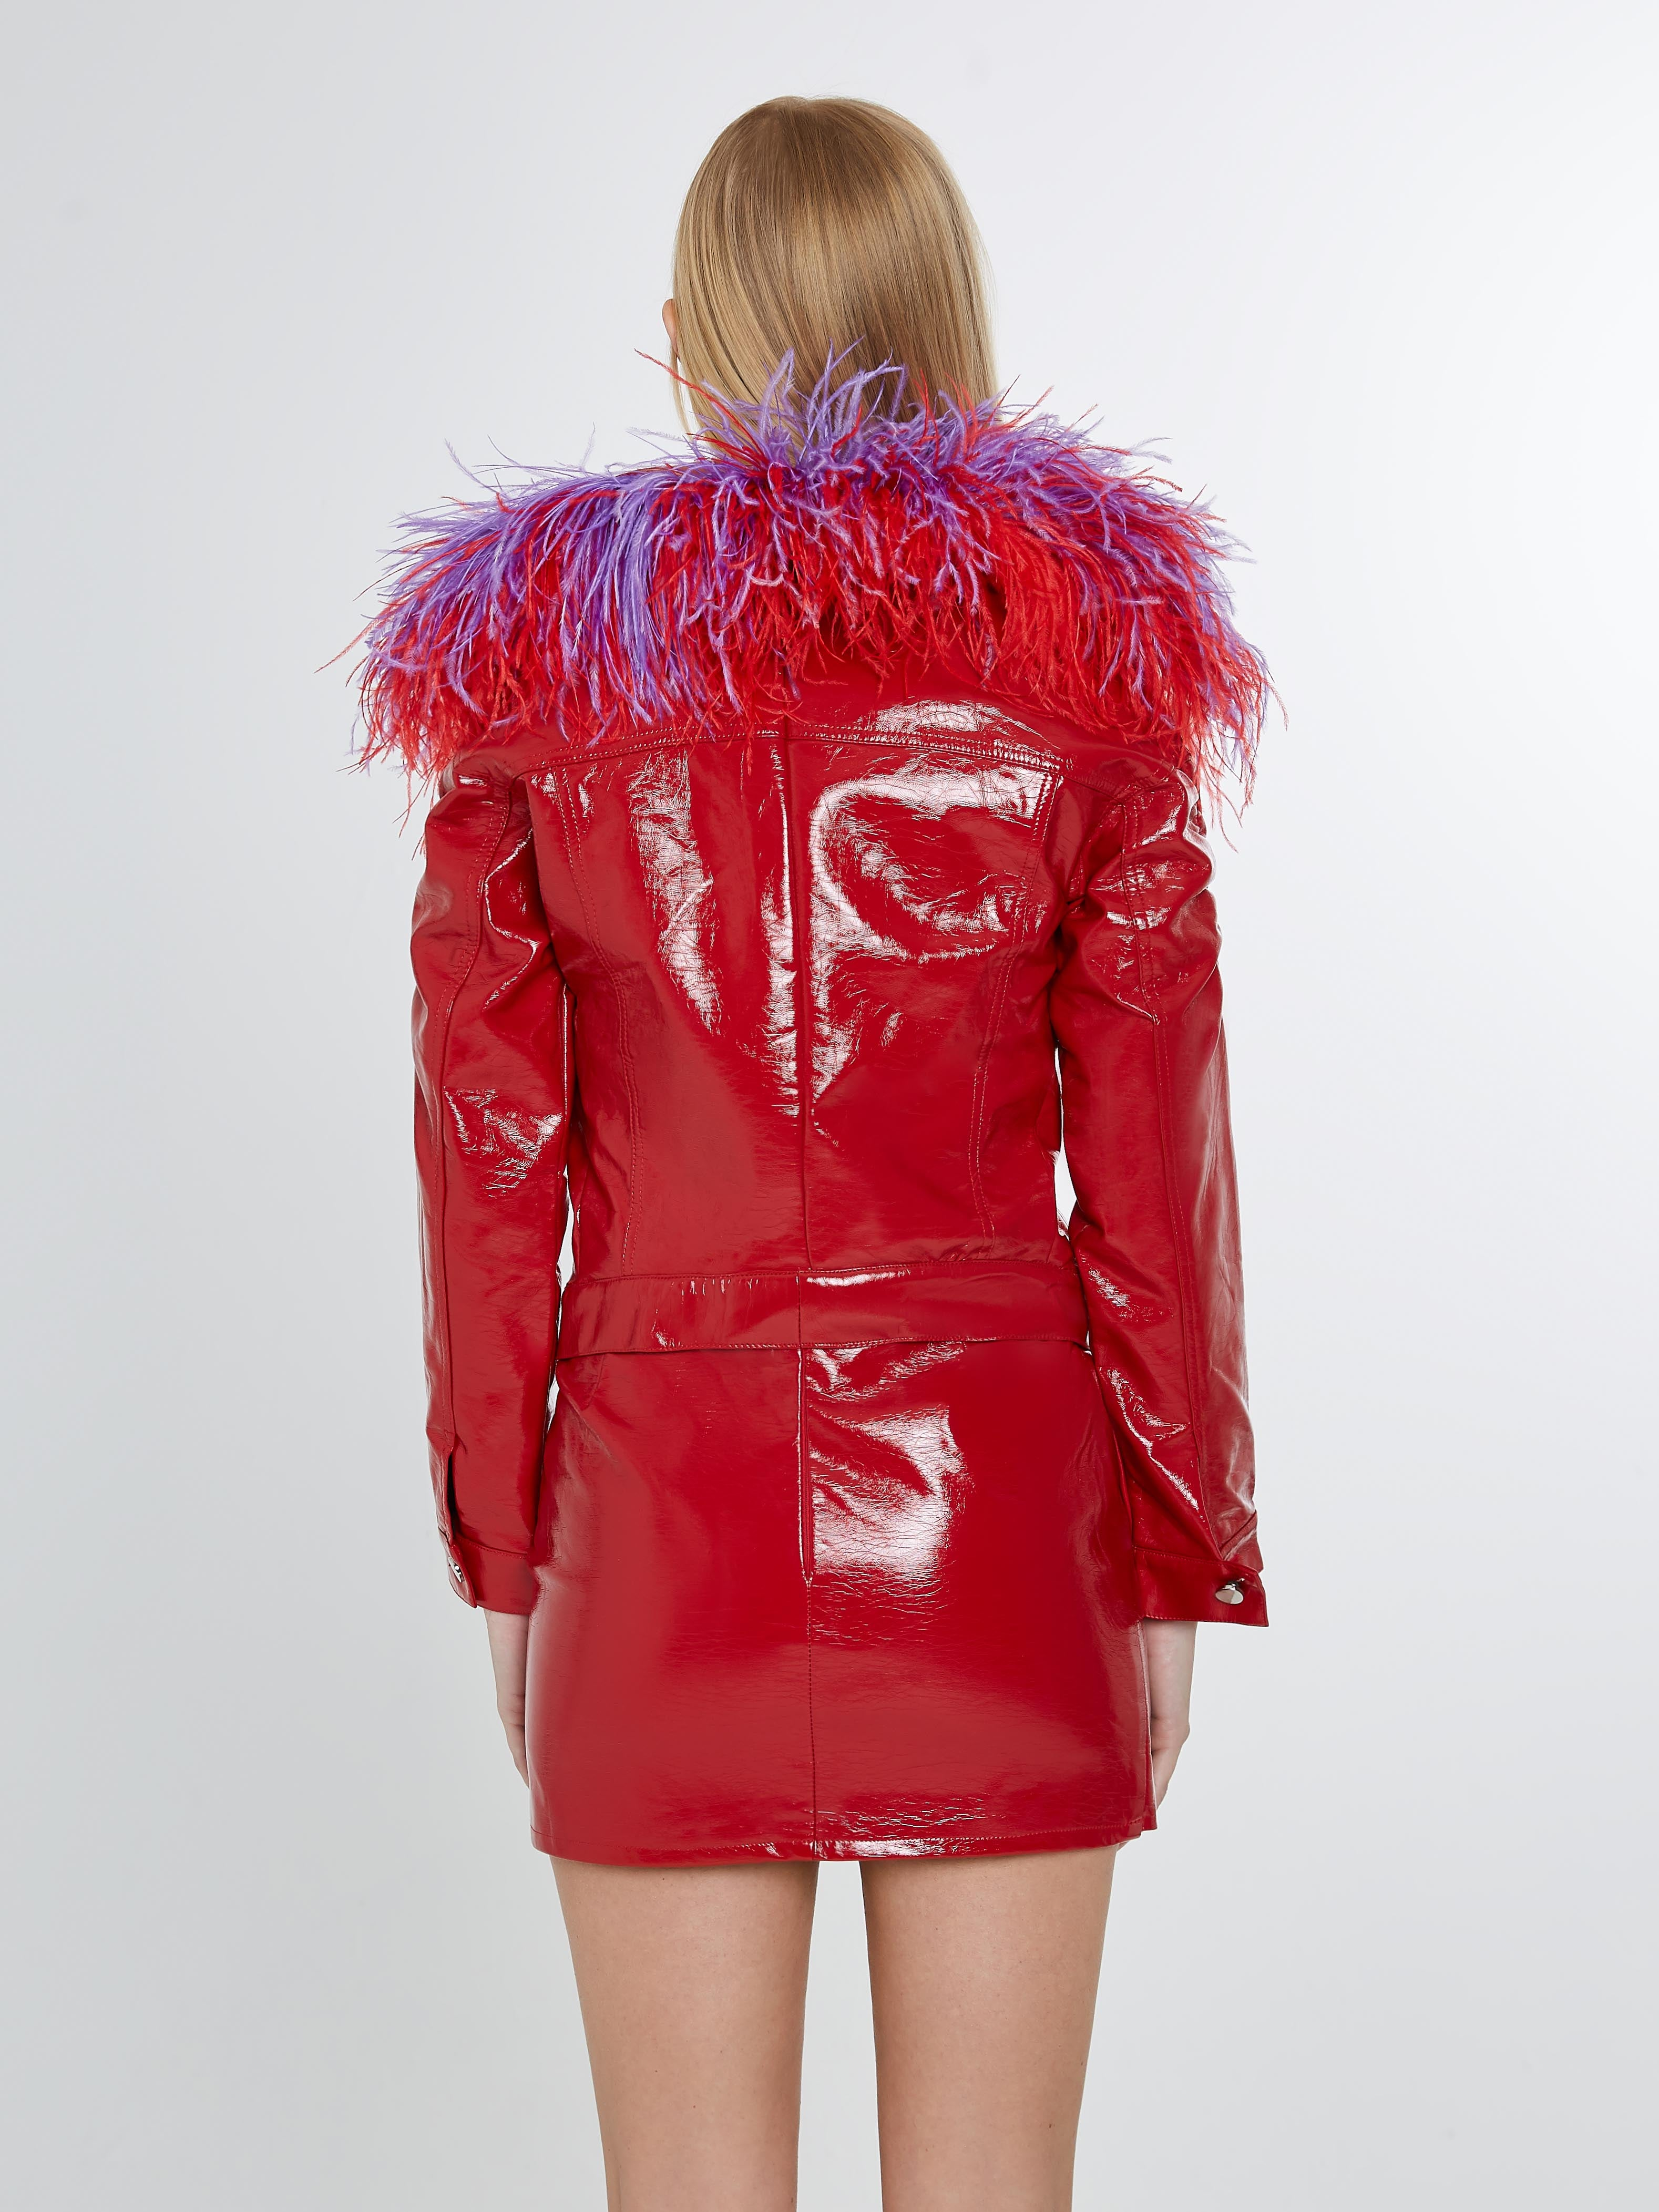 Red vinyl cropped jacket with purple/ red feathered collar